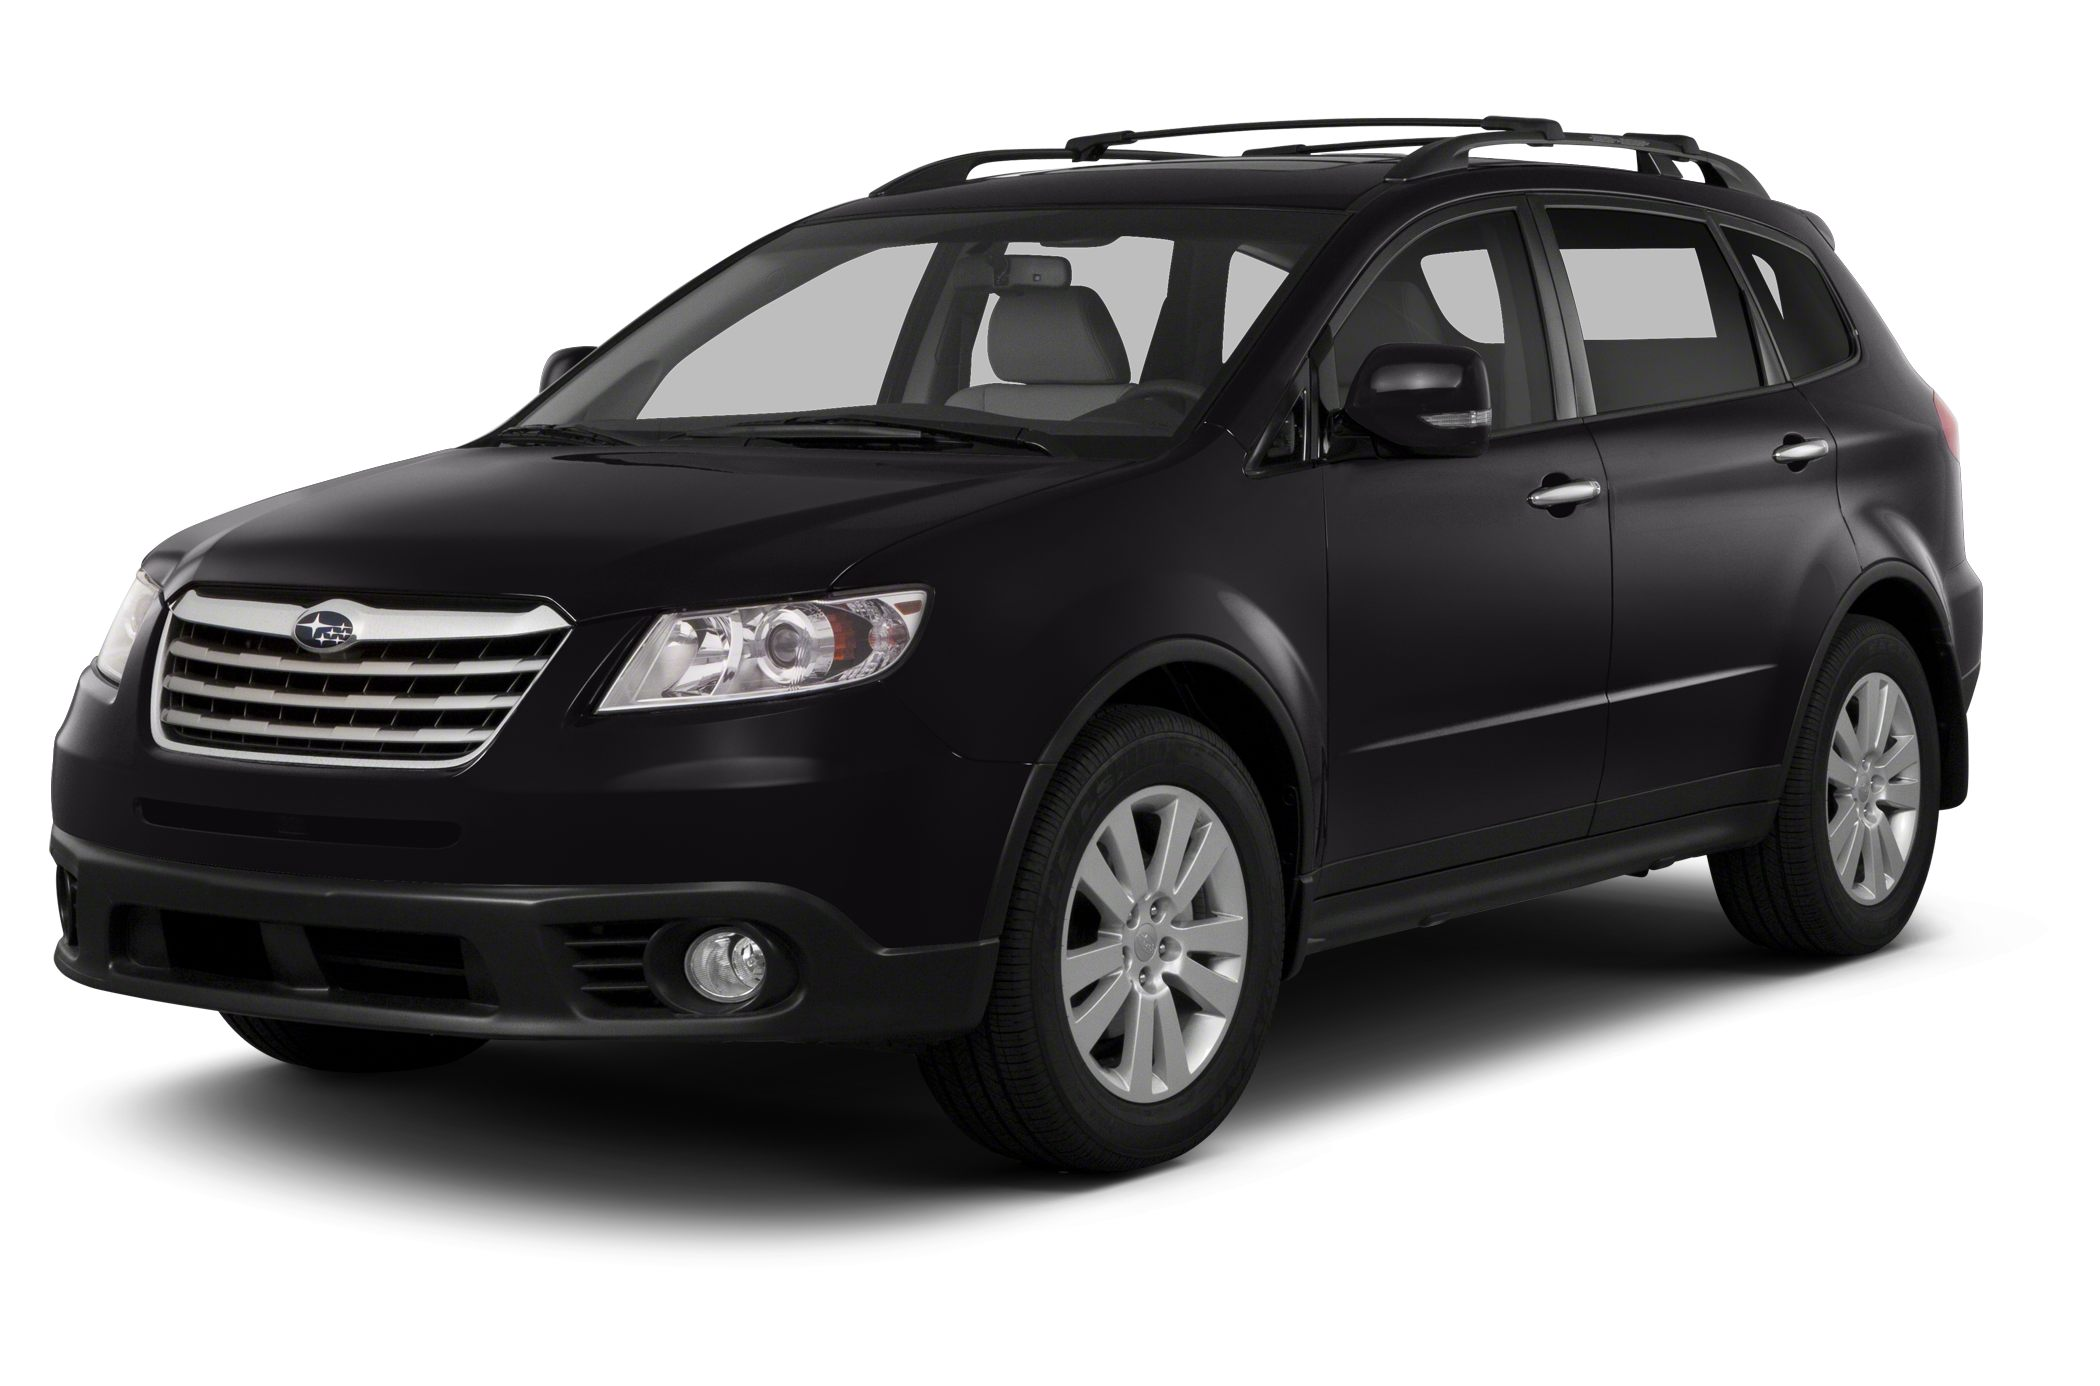 2013 Subaru Tribeca 3.6R Limited SUV for sale in Eau Claire for $31,995 with 20,362 miles.